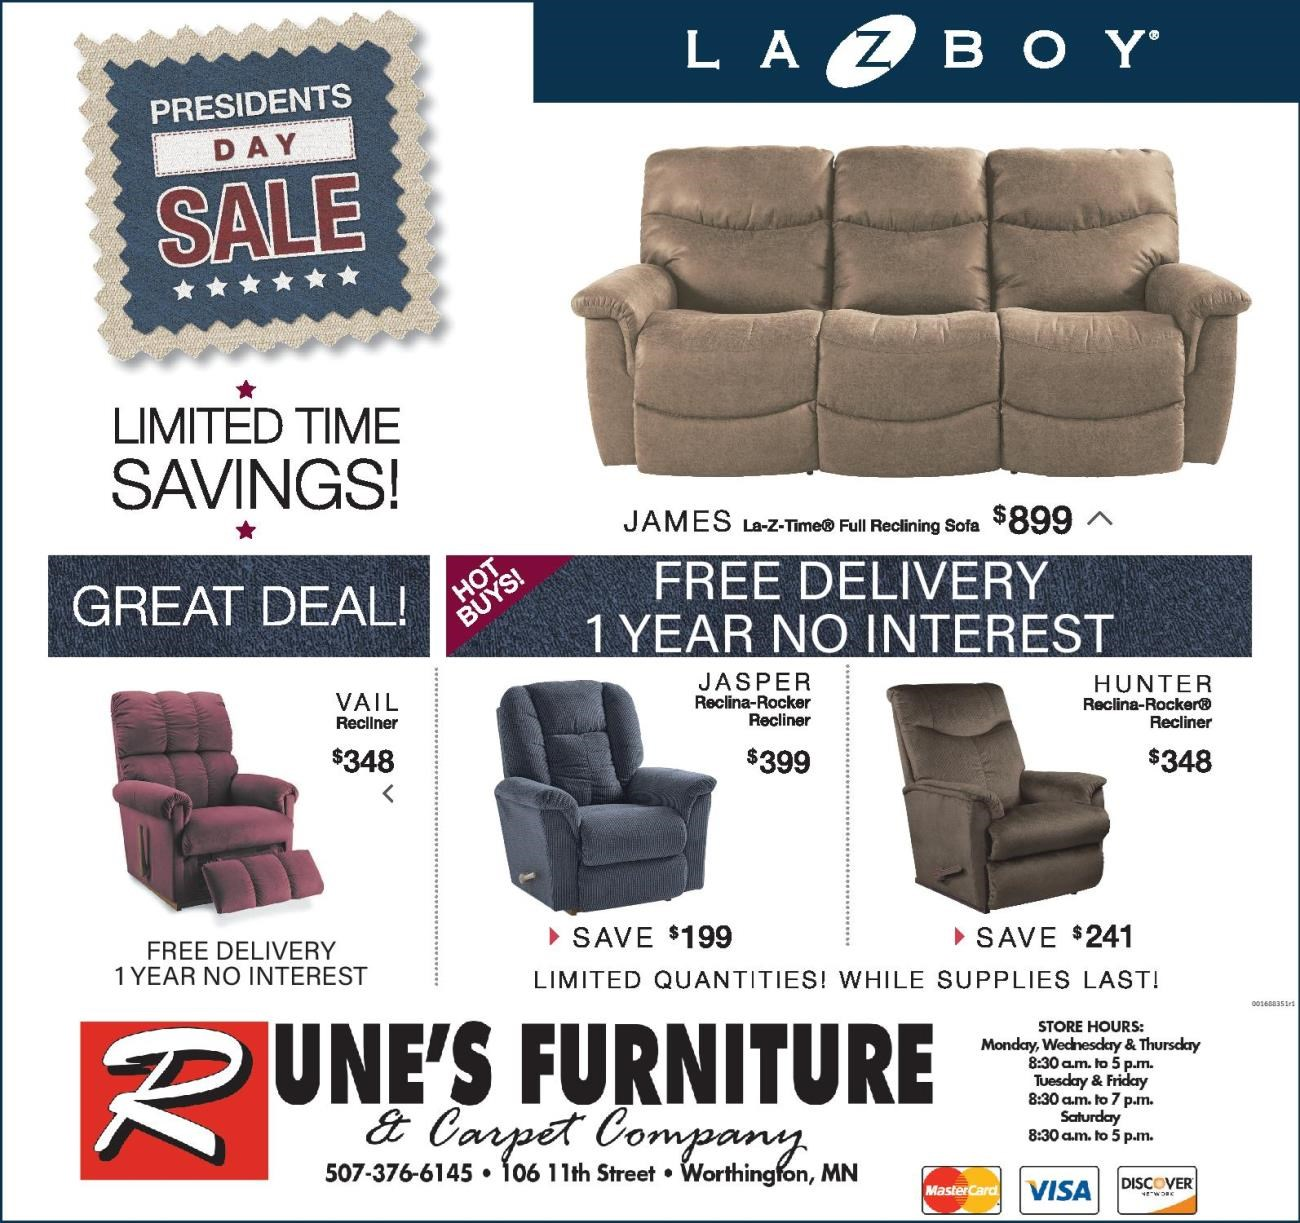 LAY-Z-BOY Extended Sale